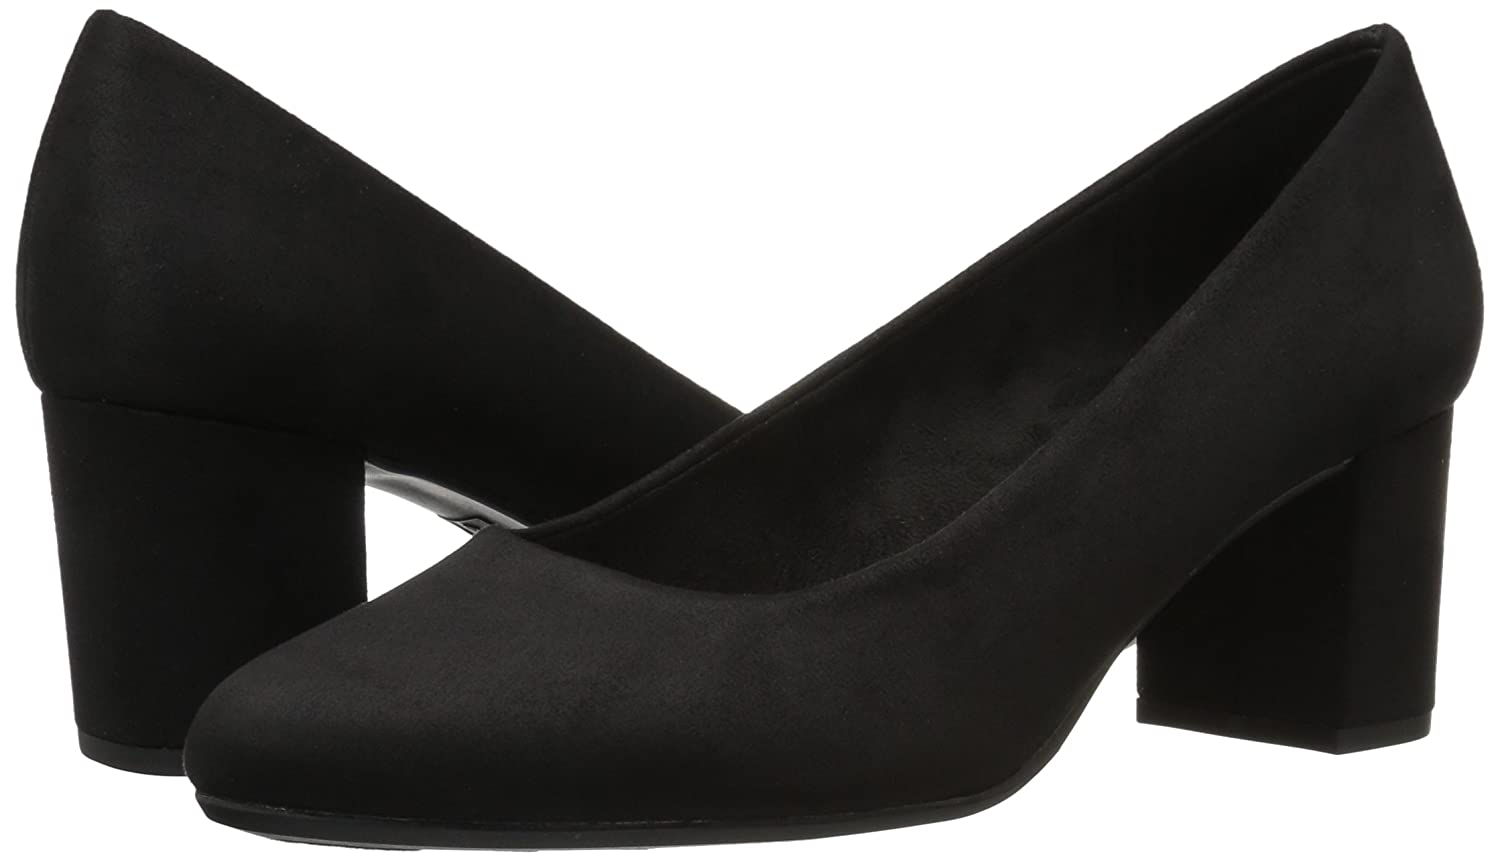 Easy Street Women's Proper Dress Pump B071J8LD8S 9.5 2W US|Black Super Suede